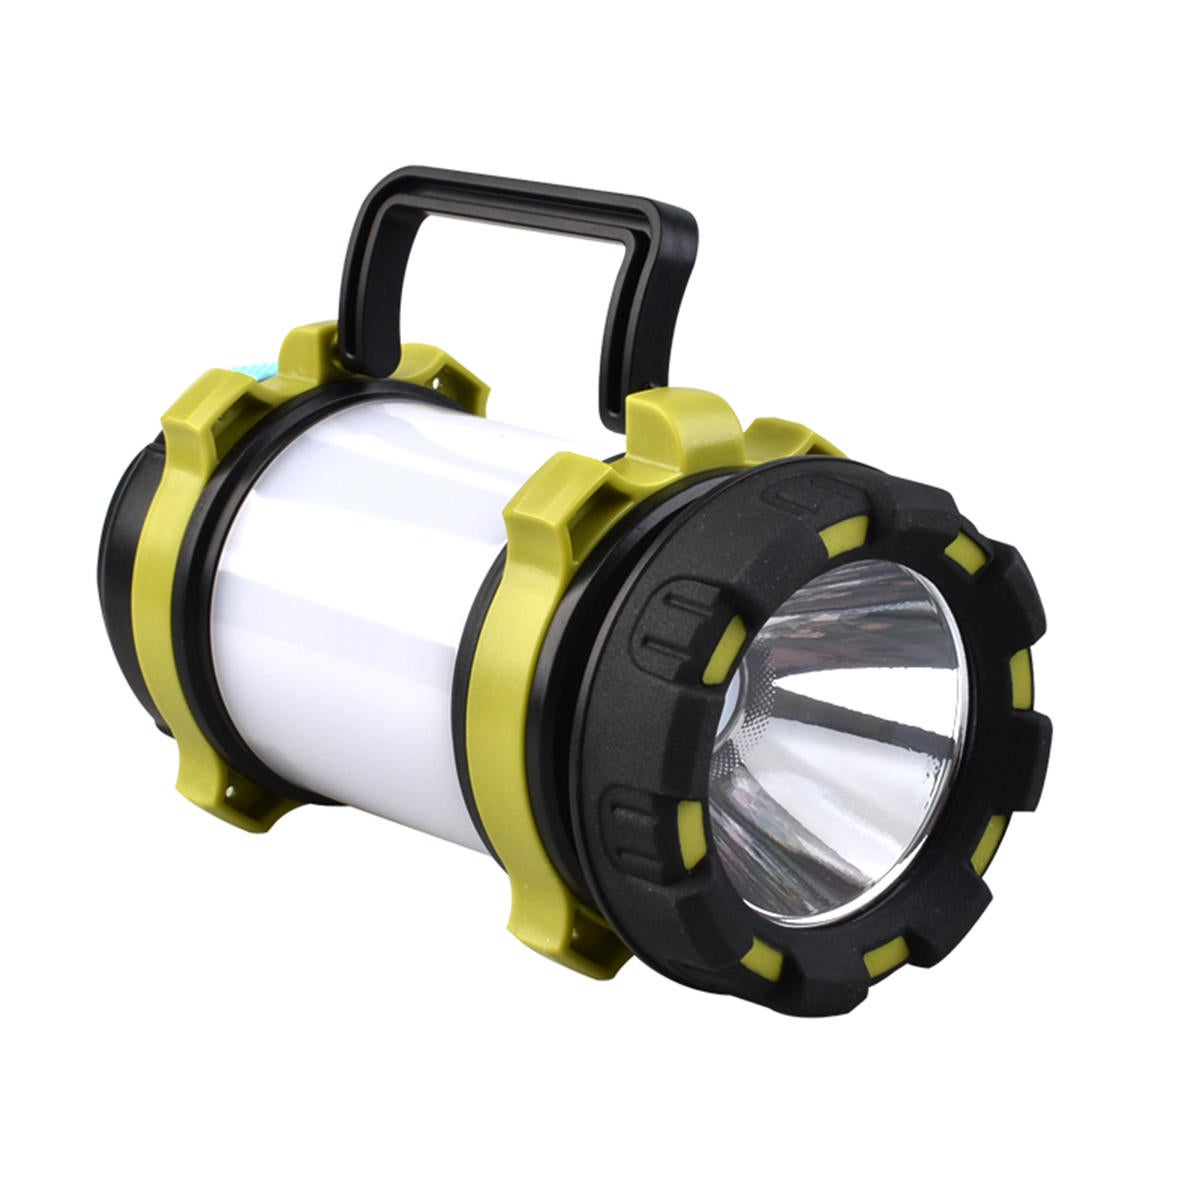 LED Flashlight Camping Light Torch Lantern USB Rechargeable USB Charger Worklight Waterproof GREEN COLOR